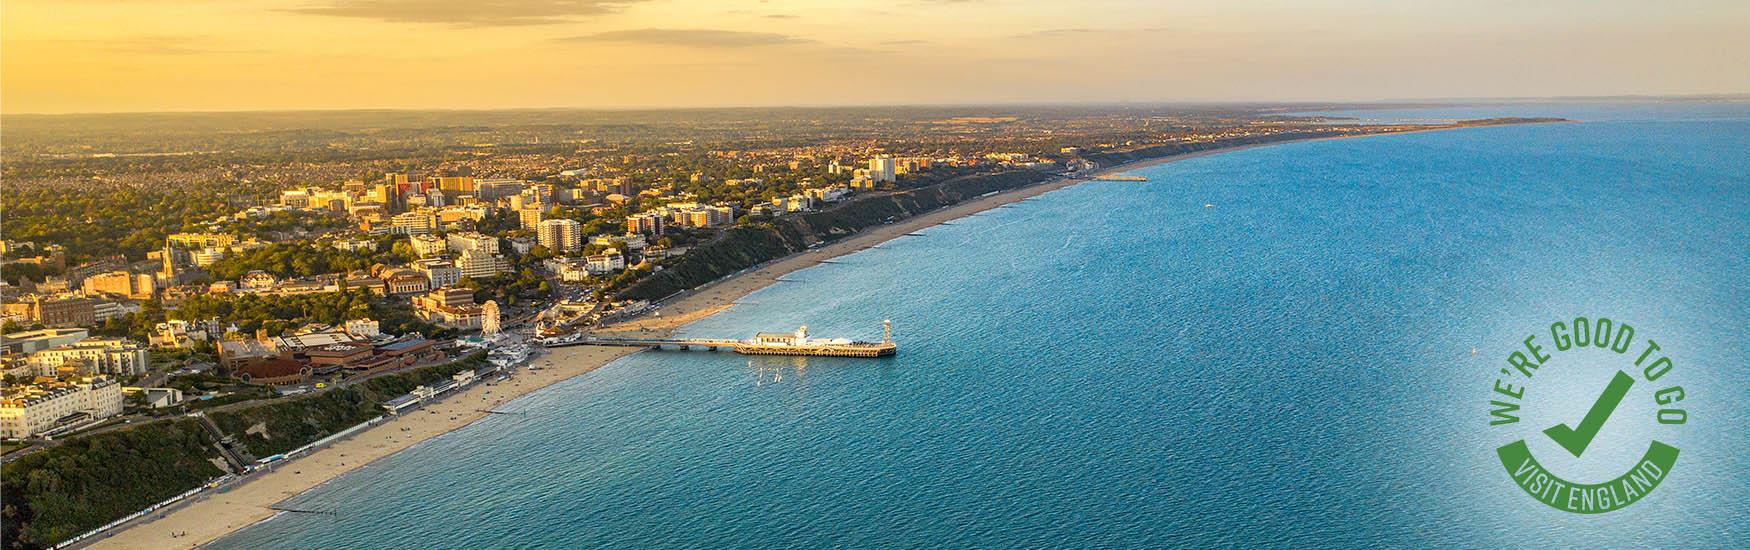 Sunset image of Bournemouth bay, cliffs and beaches with green we're good to go logo in corner